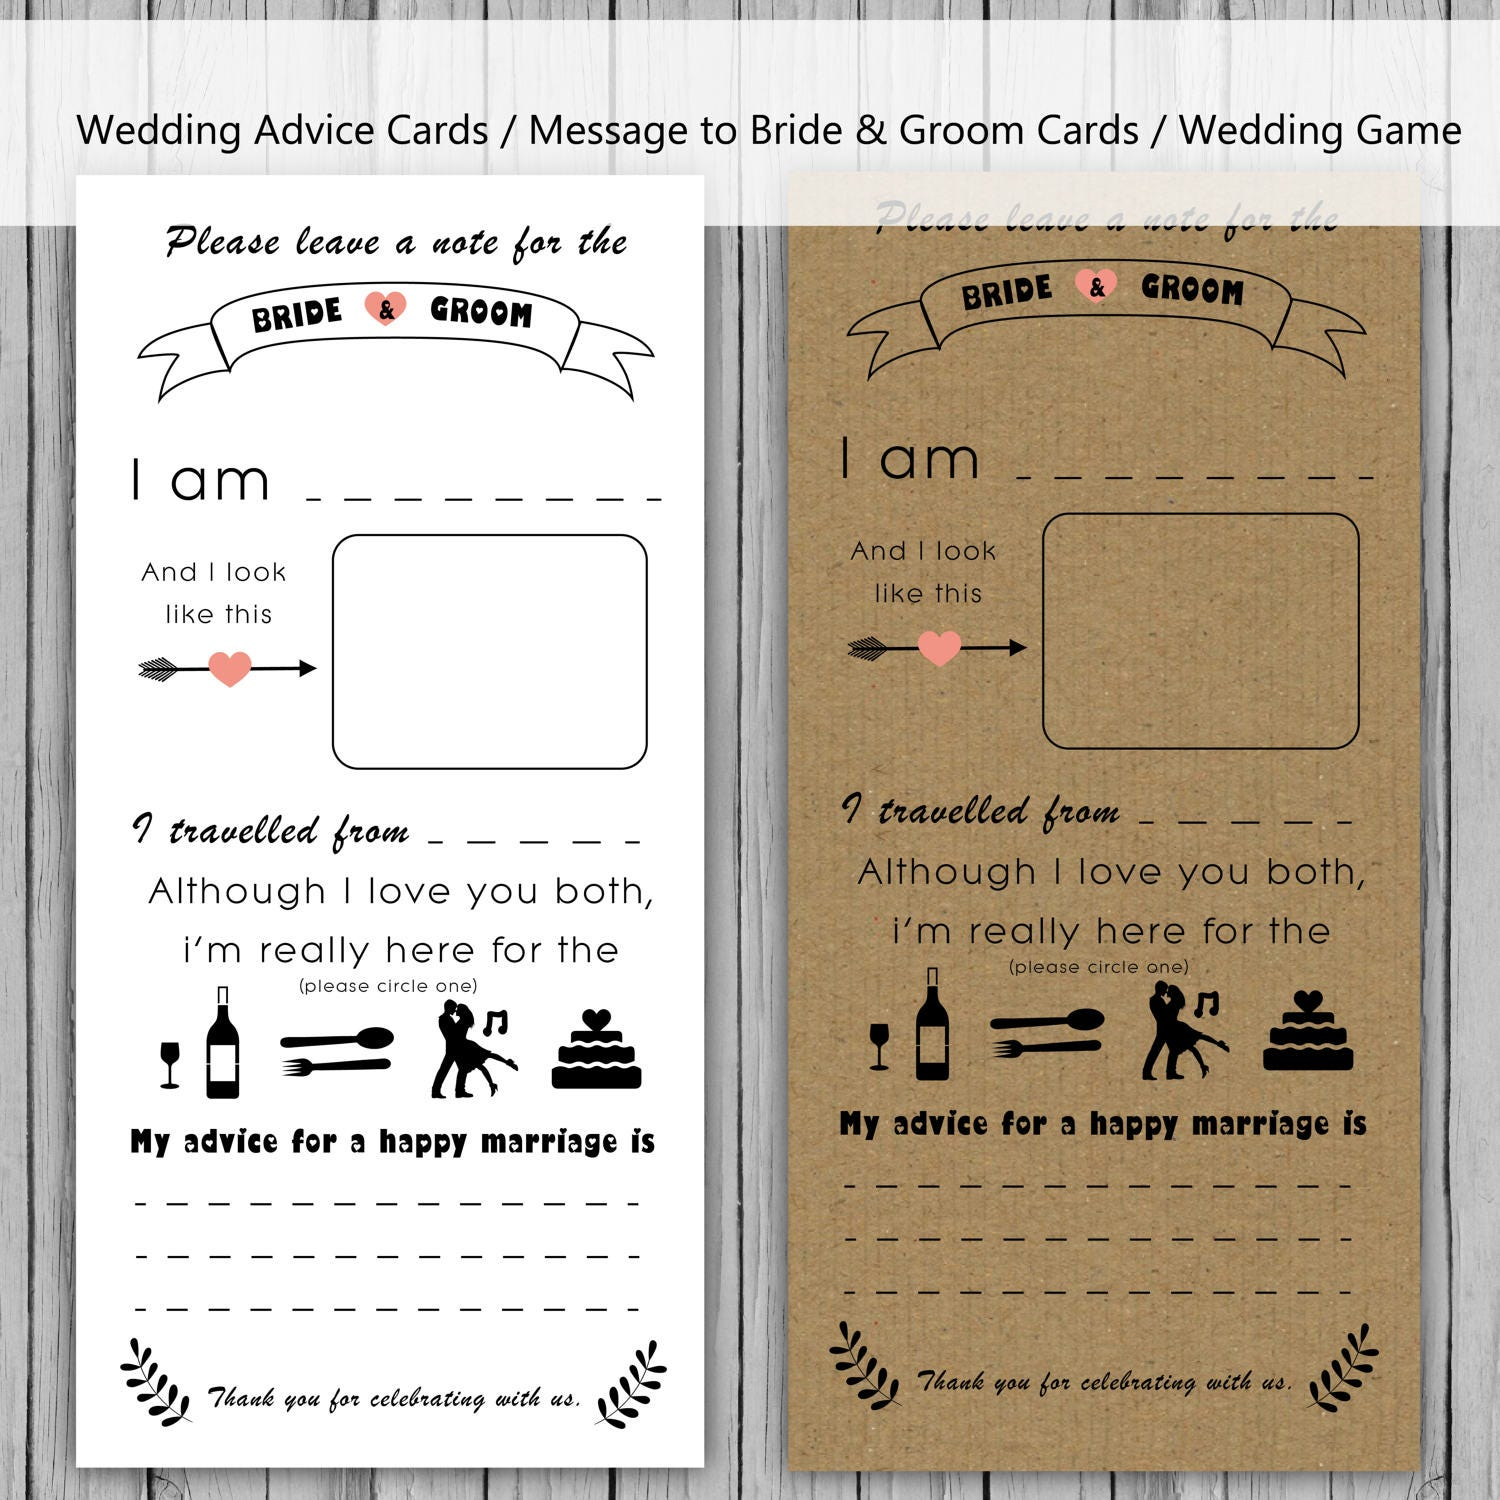 Wedding Advice: Wedding Advice Card Message To Bride And Groom Cards Note To